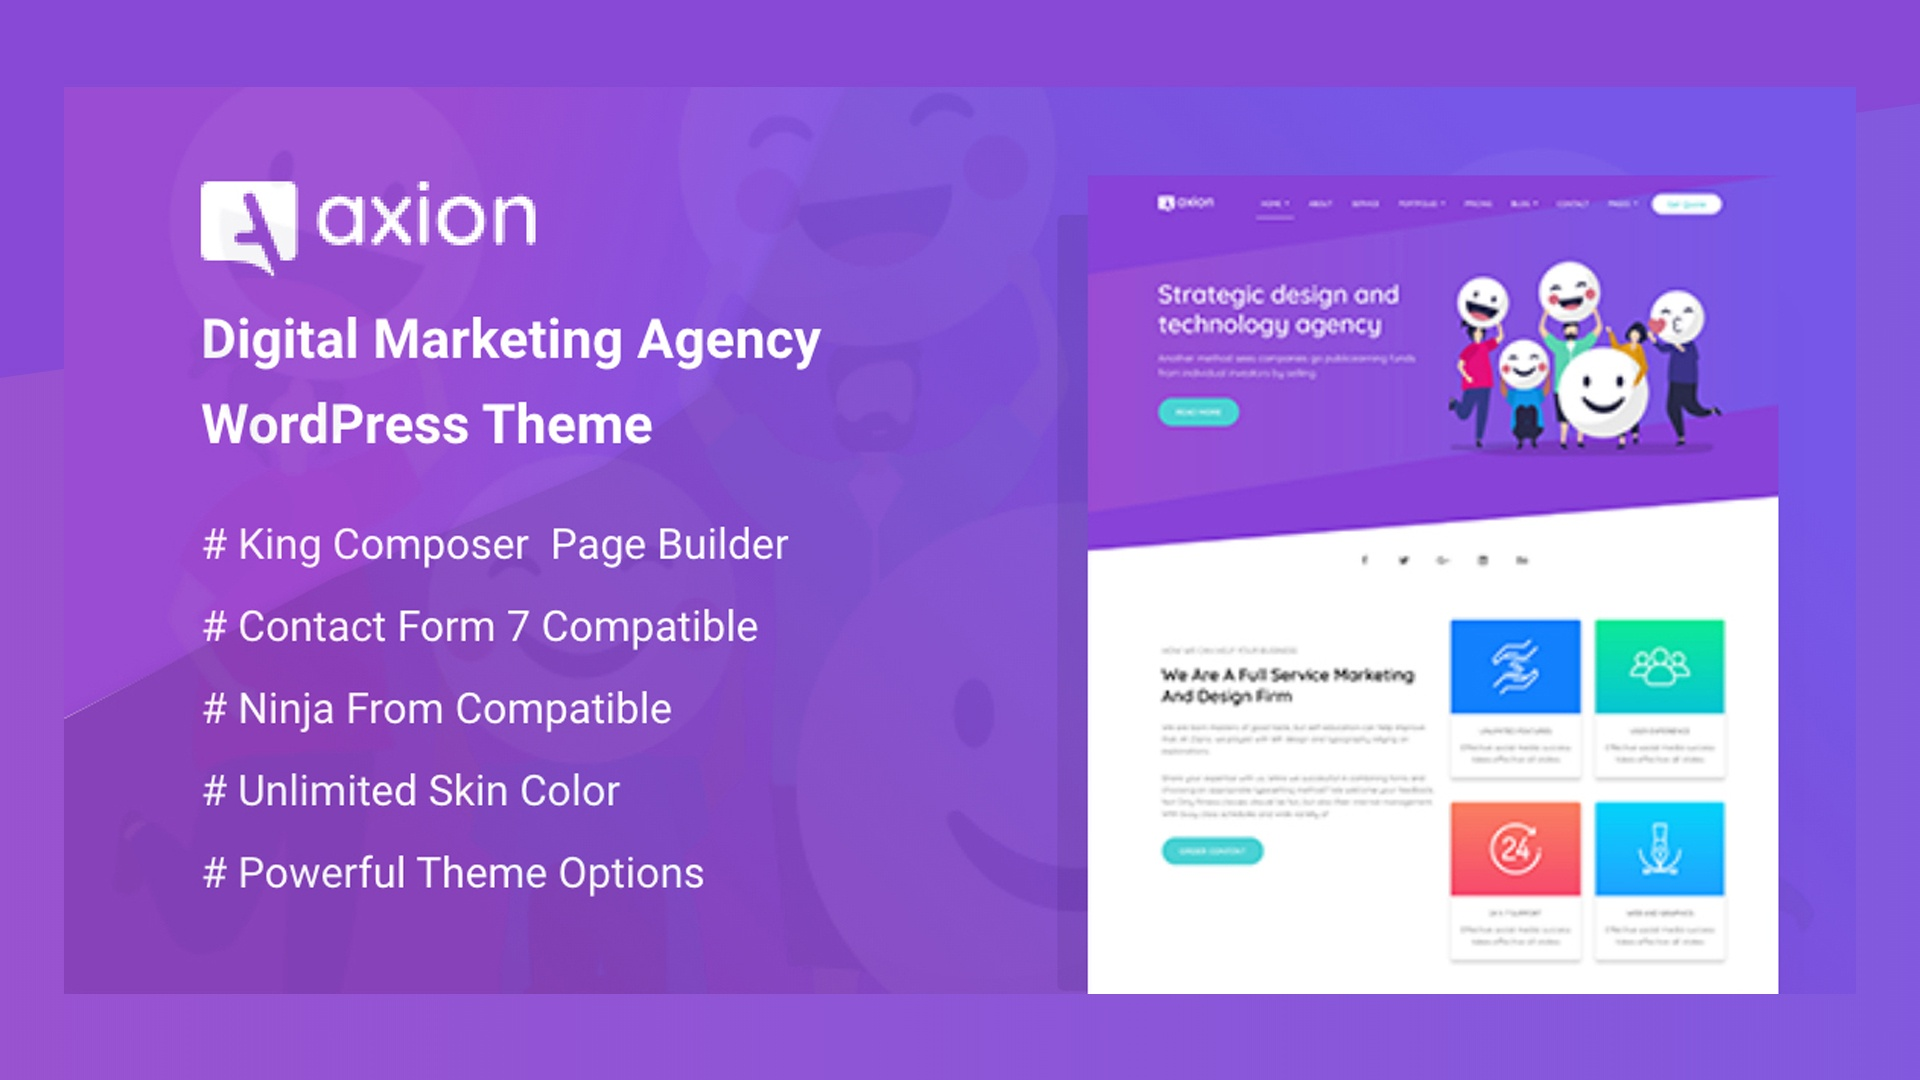 Introducing Axion: Digital Marketing Agency WordPress Theme